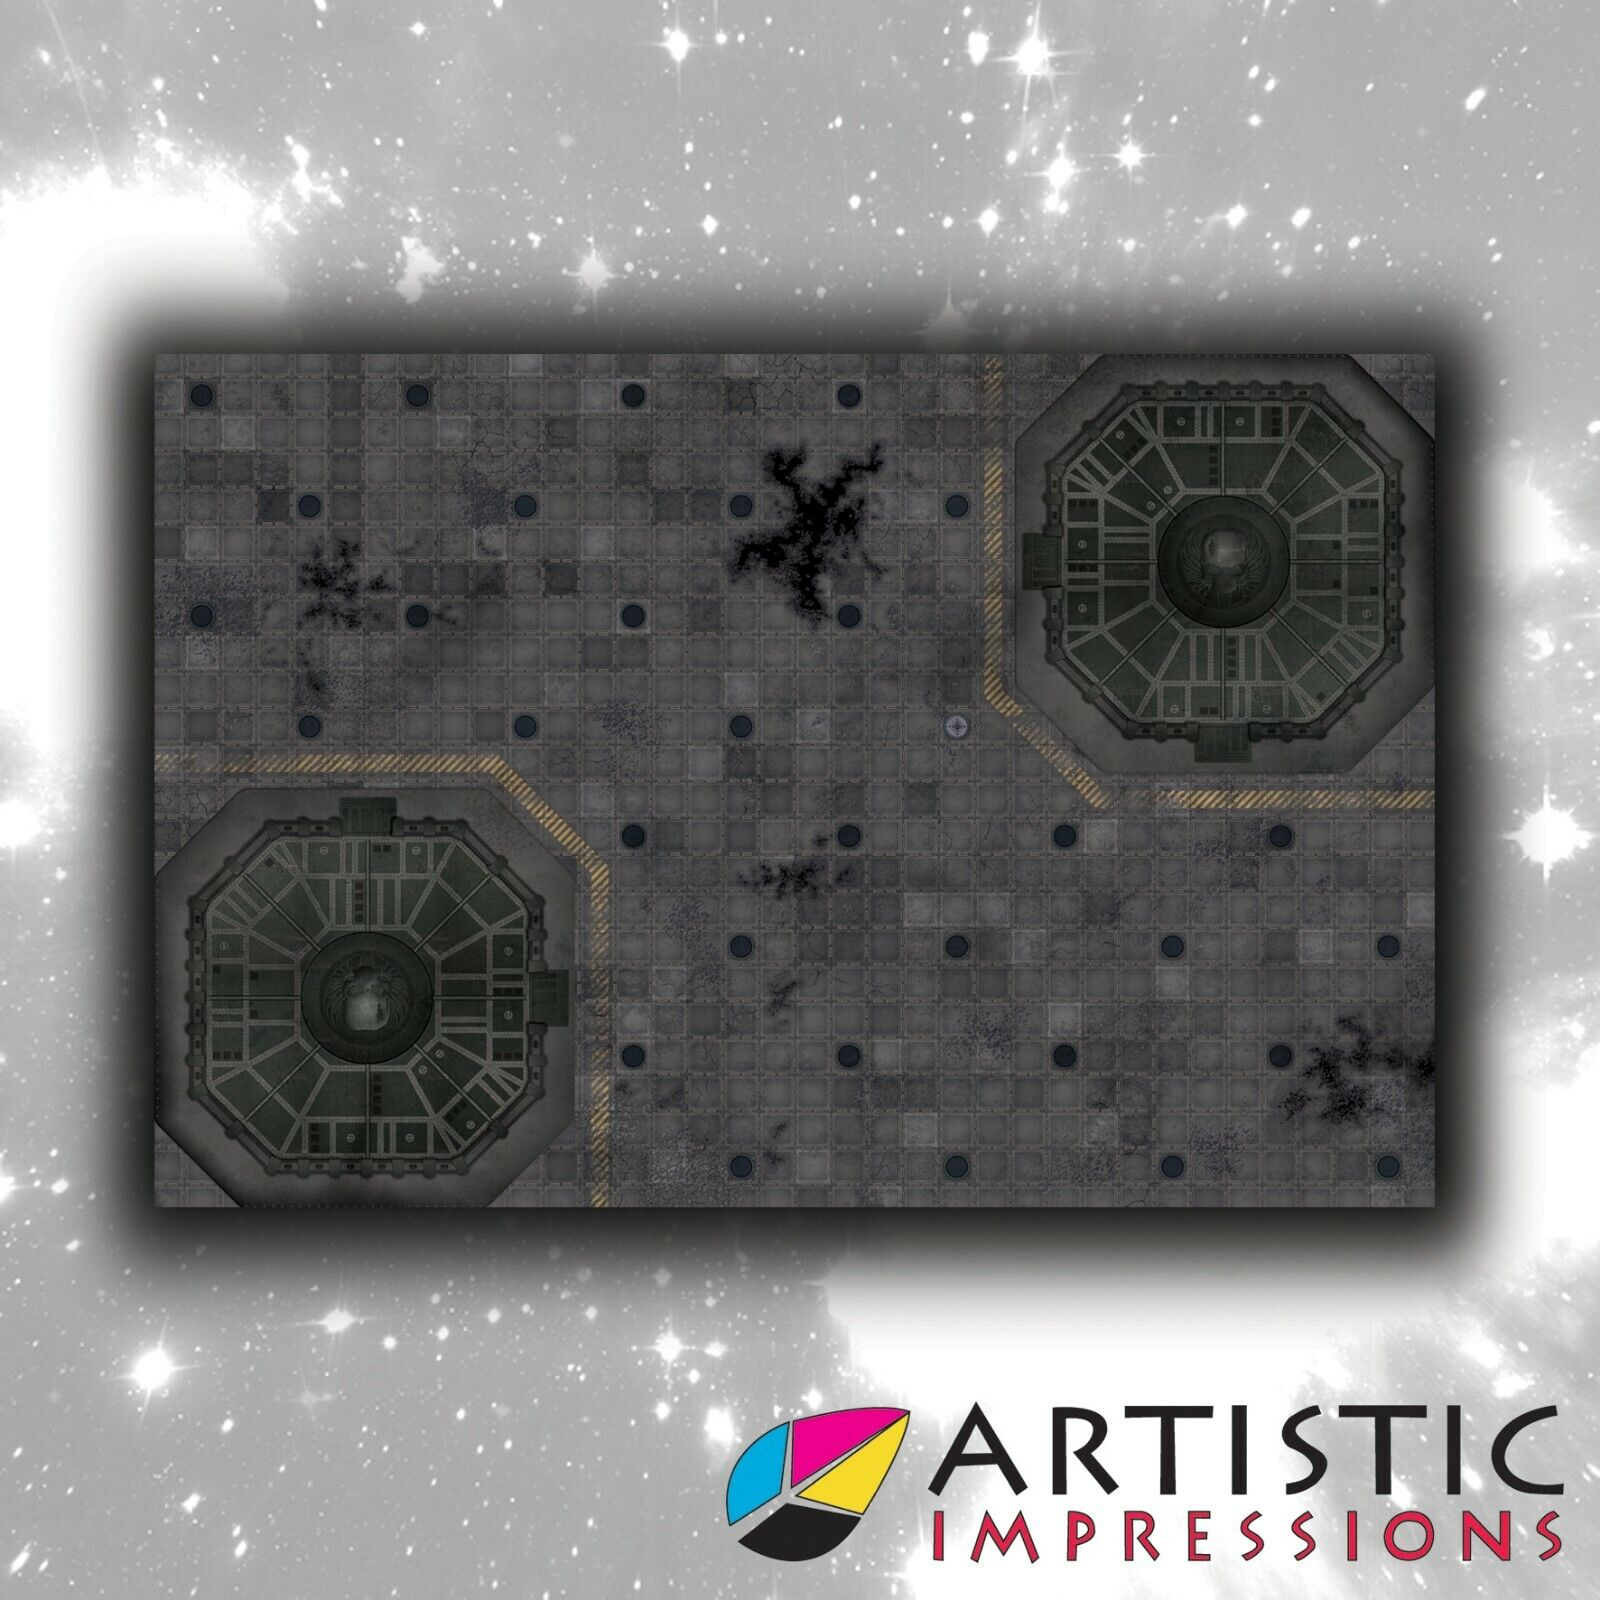 NEW Vinyl 6x4' Landing Pad Gaming Mat - Ideal for Warhammer